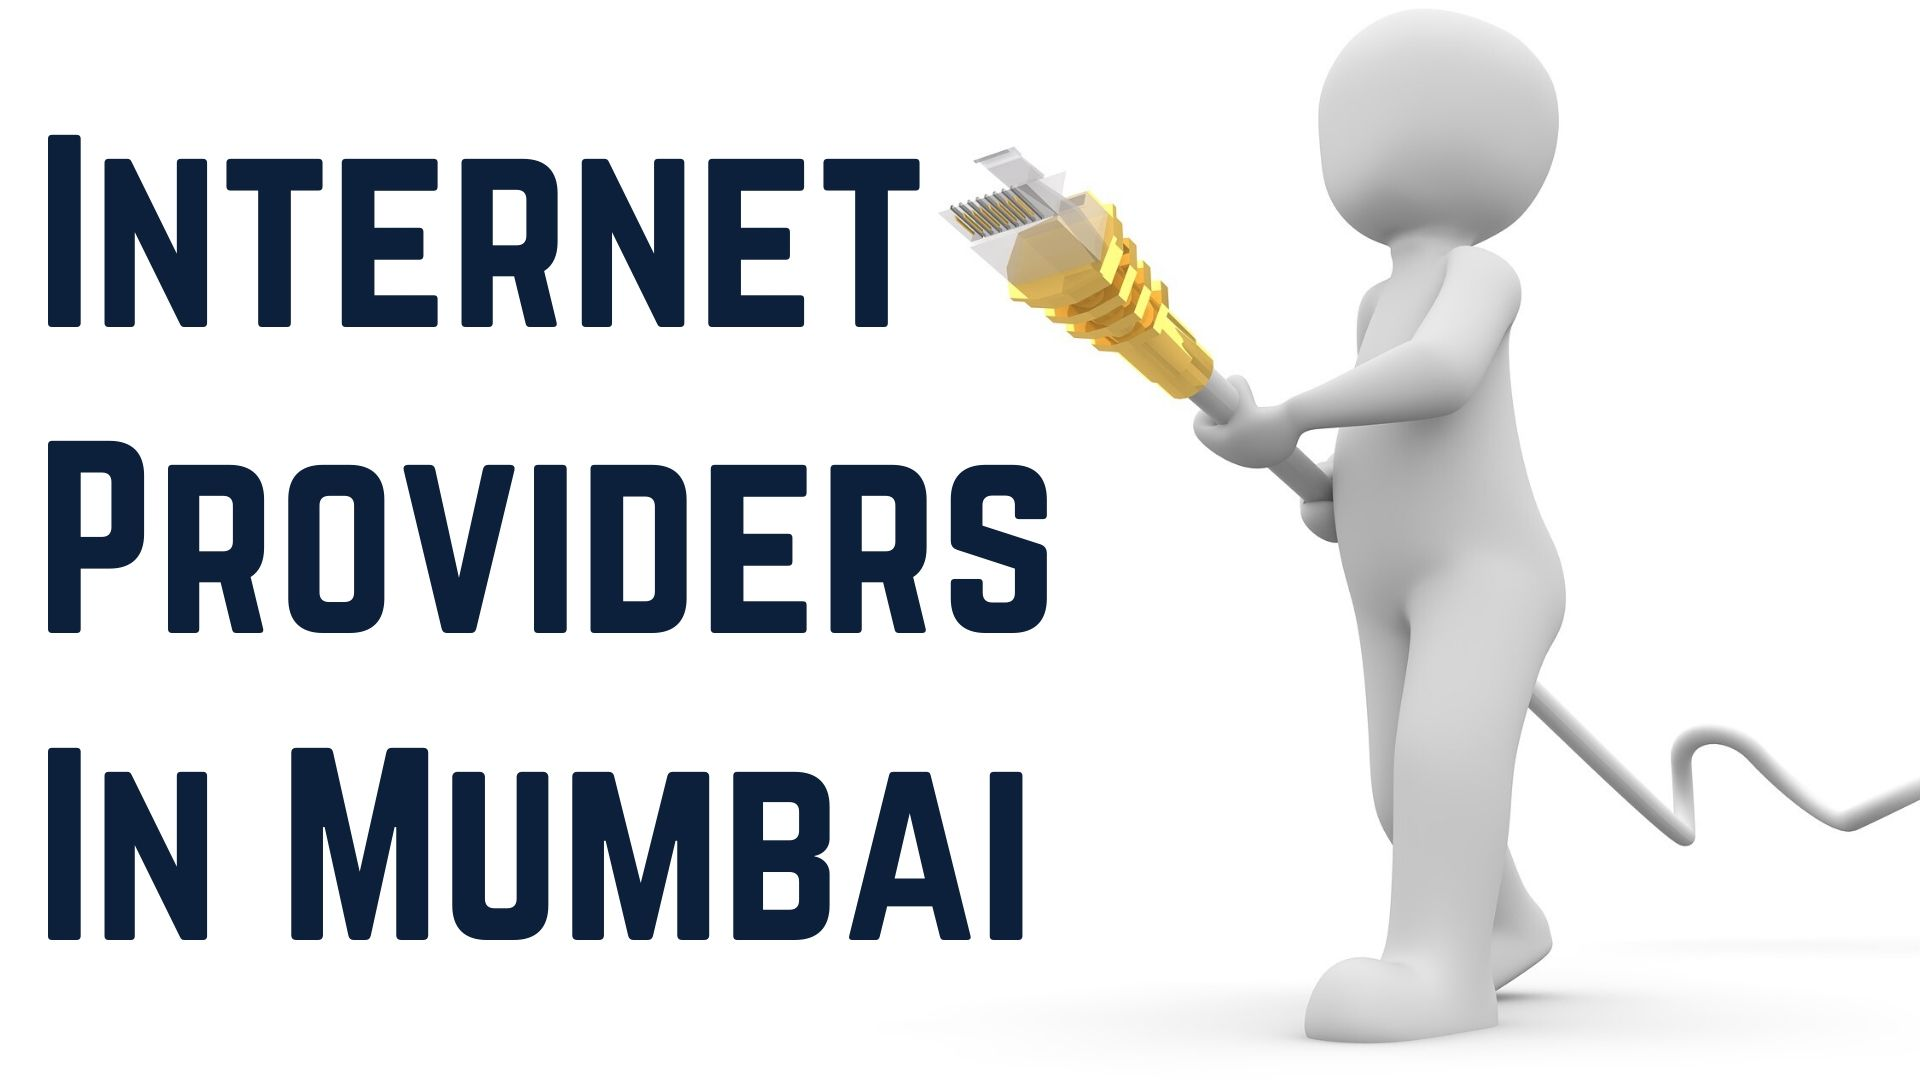 internet providers in mumbai